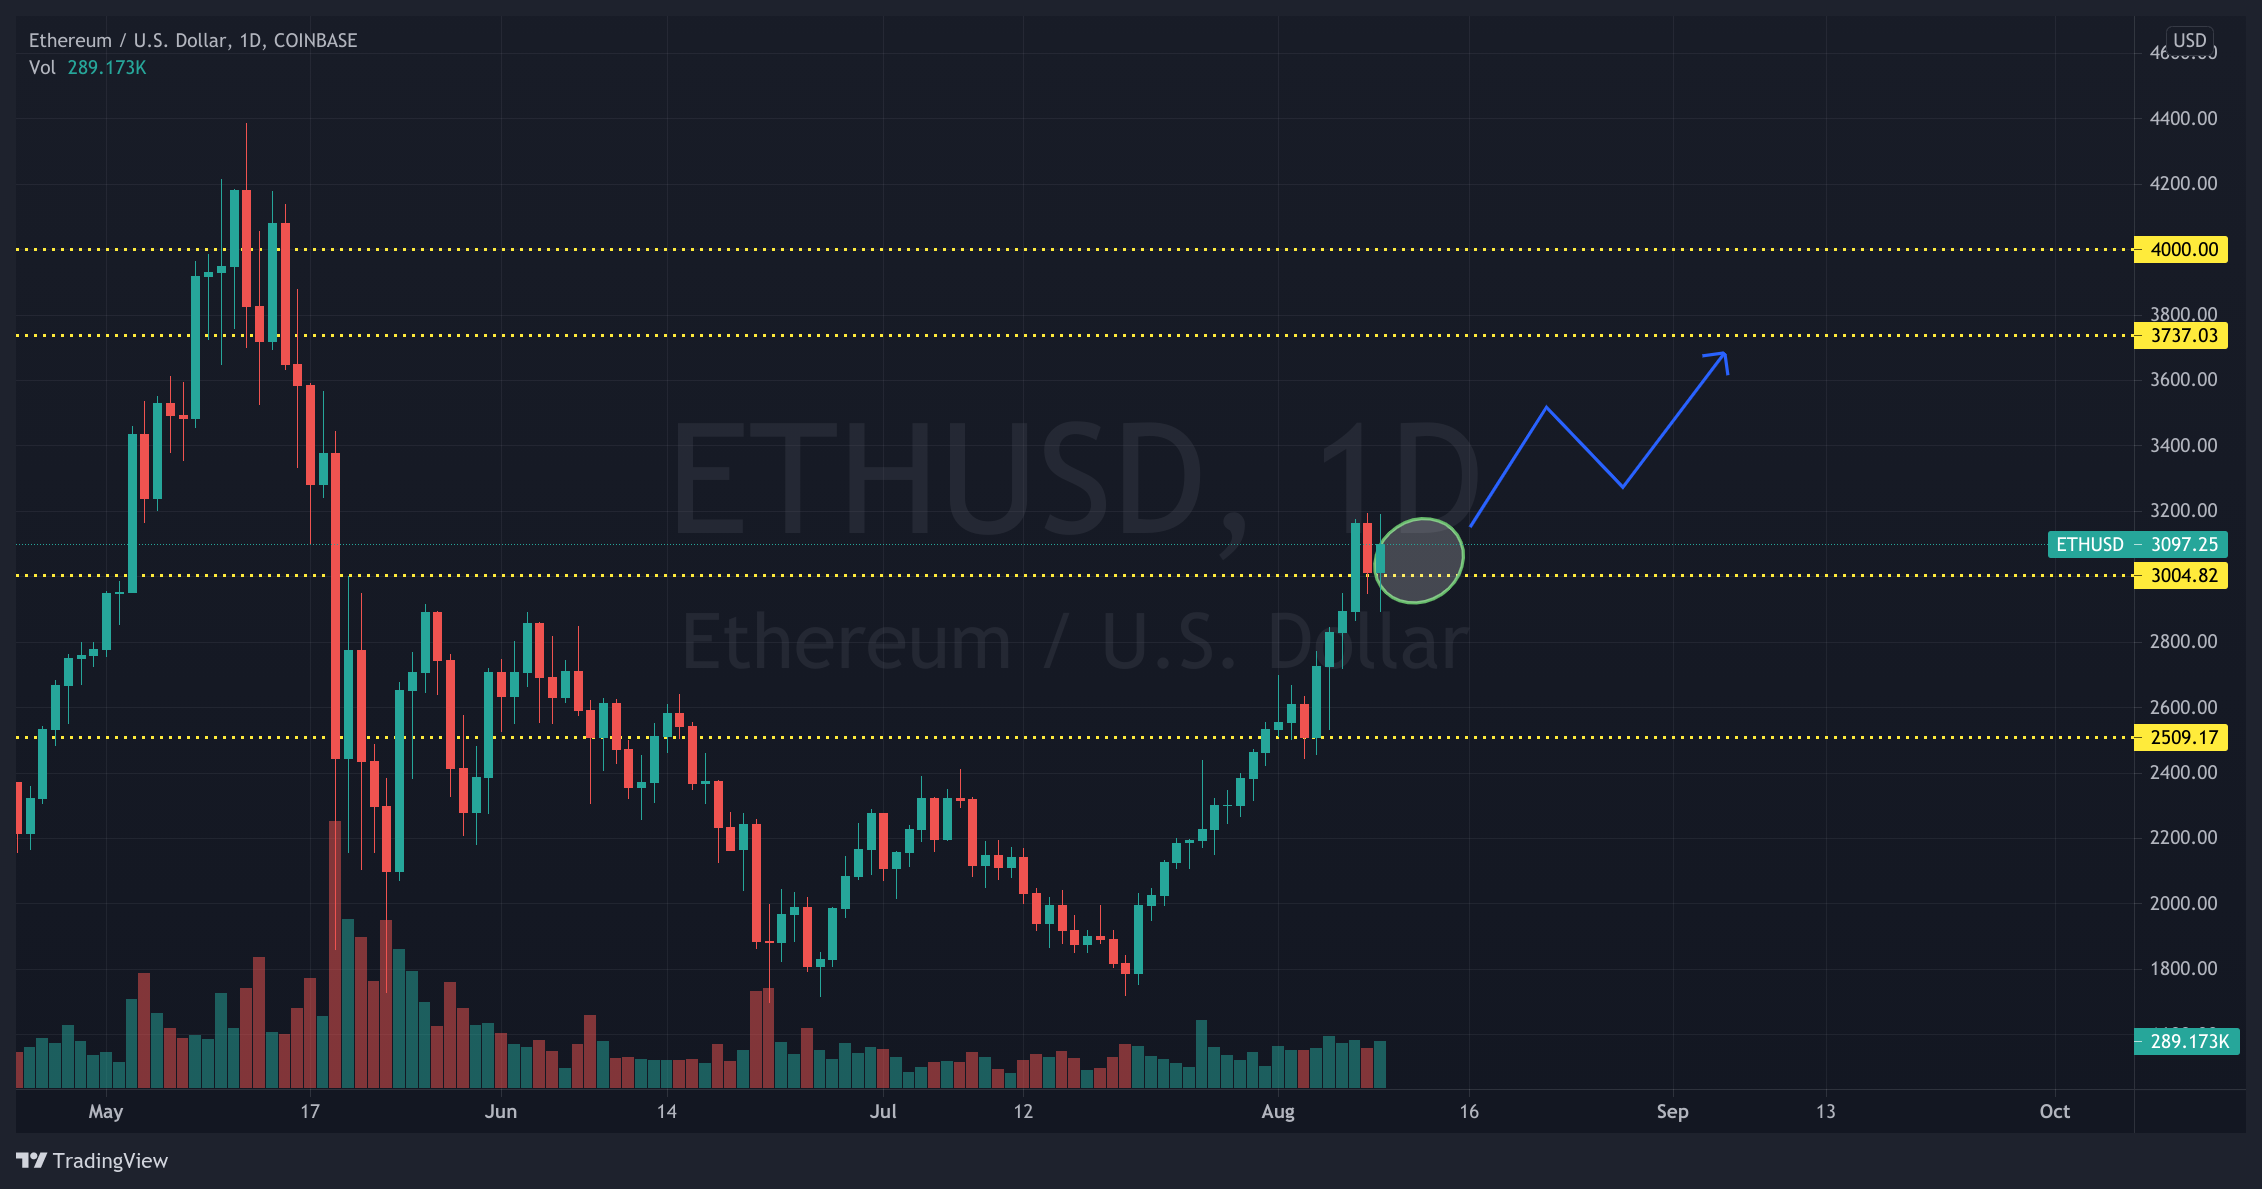 ETH/USD 1-day chart showing the potential target of Ether